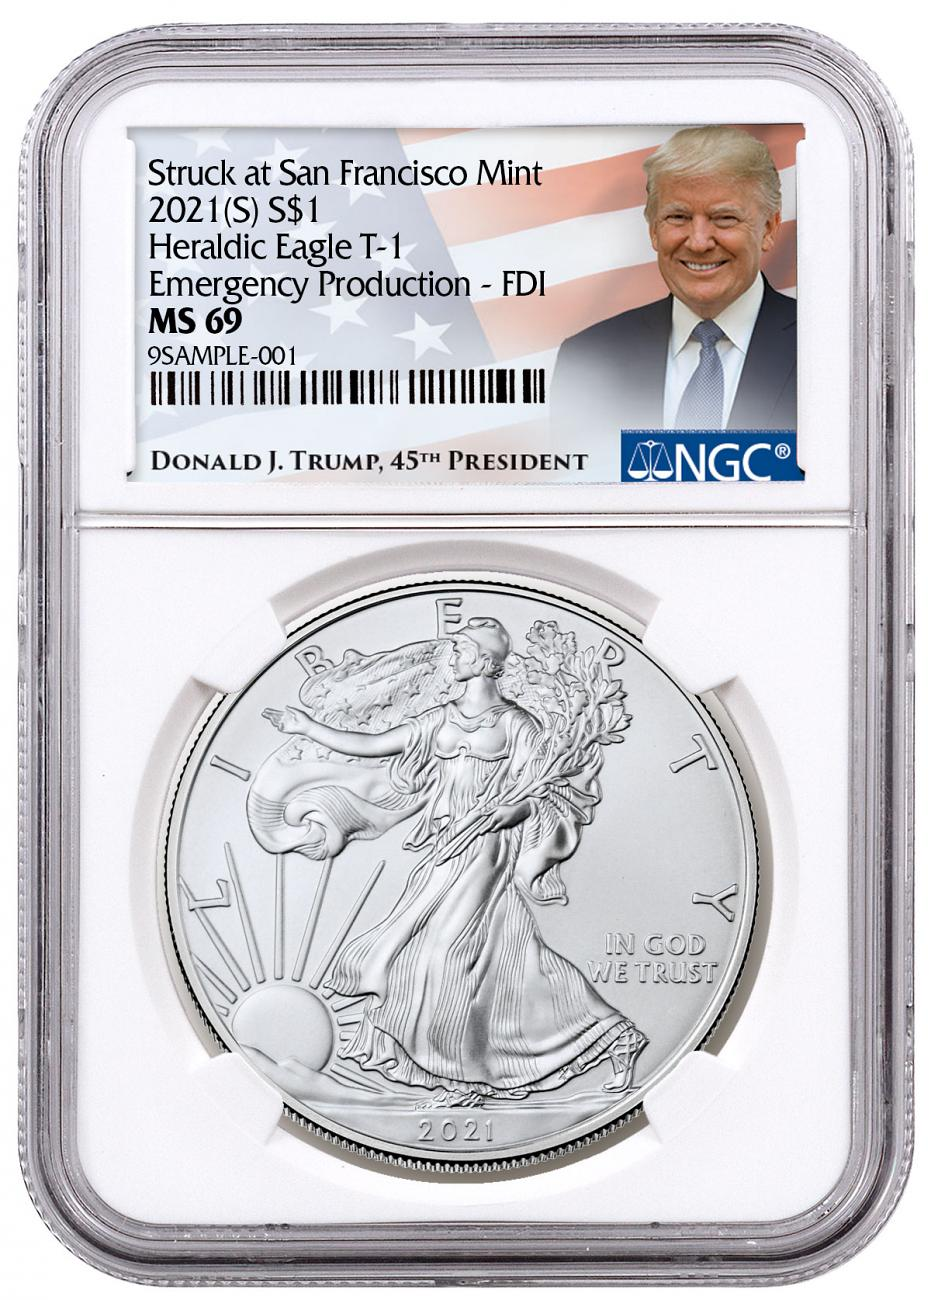 2021-(S) American Silver Eagle Emergency Production Struck at San Francisco Mint T-1 NGC MS69 FDI Trump Label